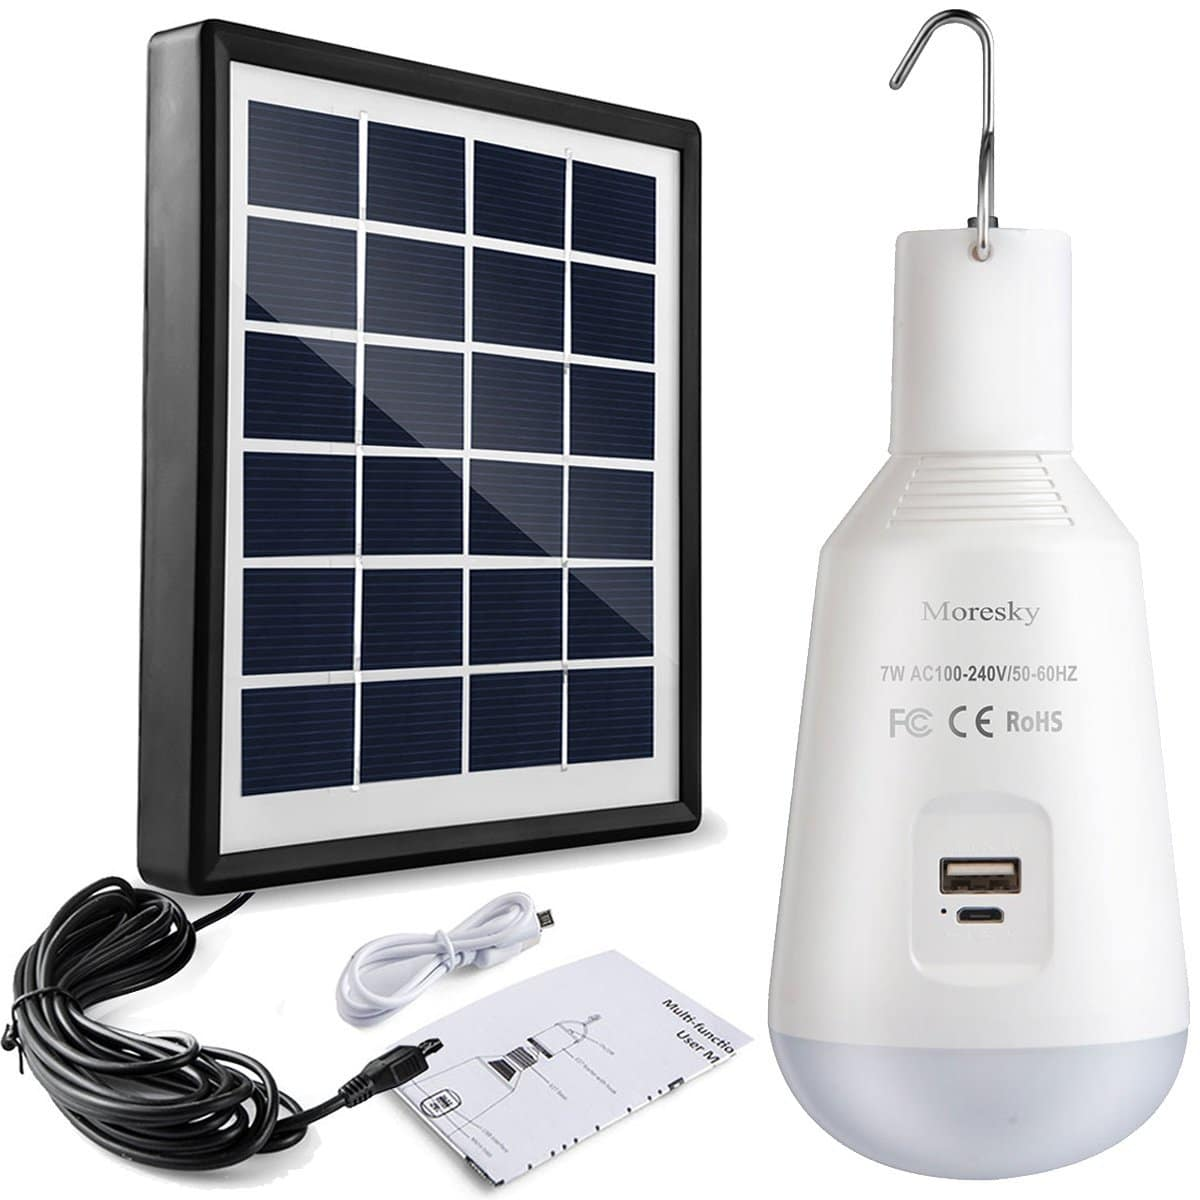 Led Solar Led Camping Light Bulb Solar Panel And Usb Rechargeable Portable Outdoor Solar Energy Lamp